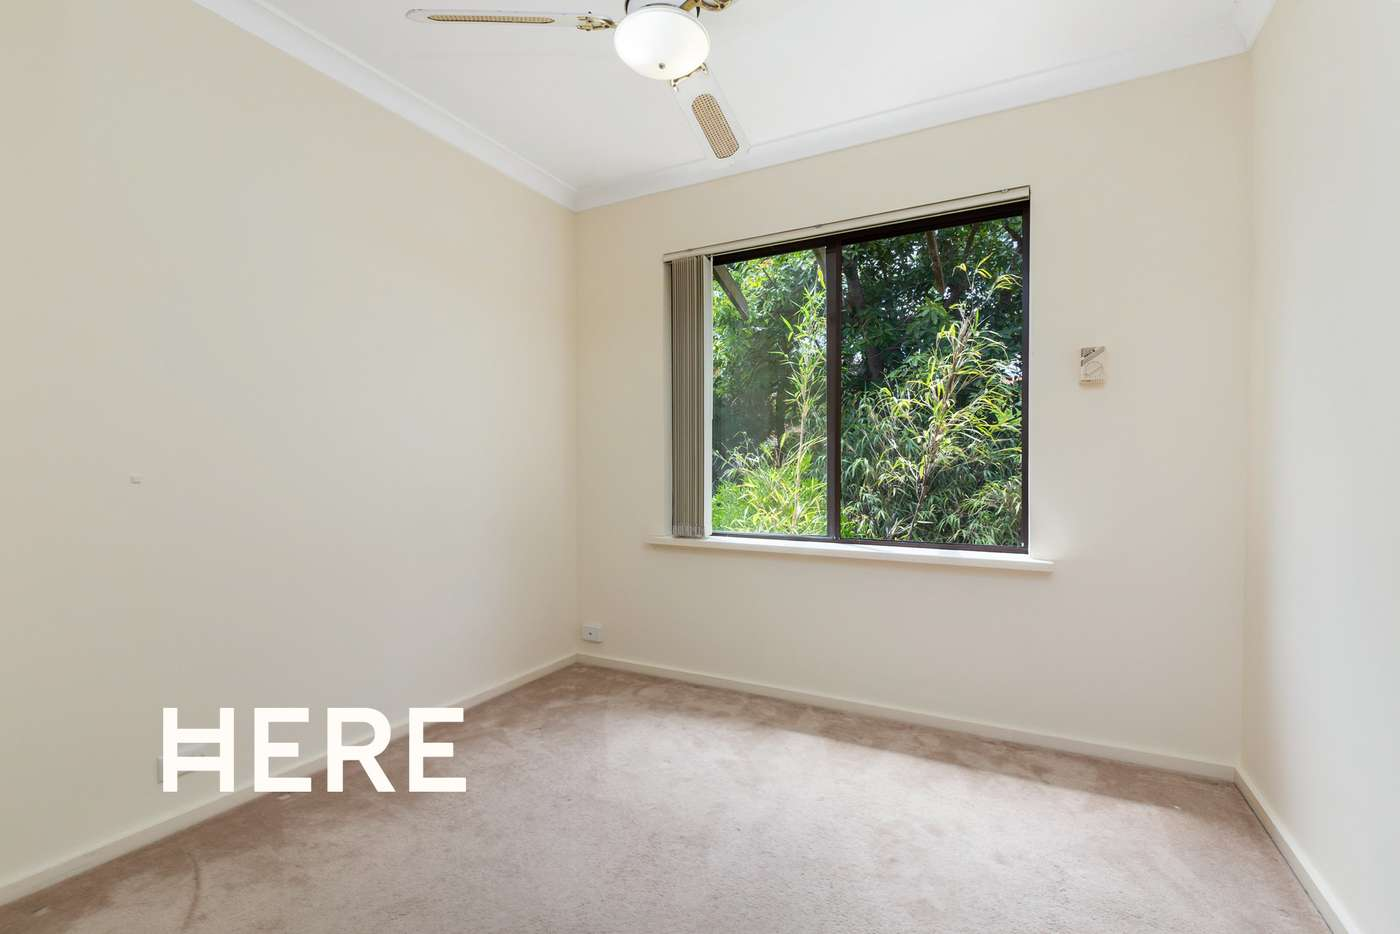 Sixth view of Homely townhouse listing, 4/24 Cook Street, Crawley WA 6009